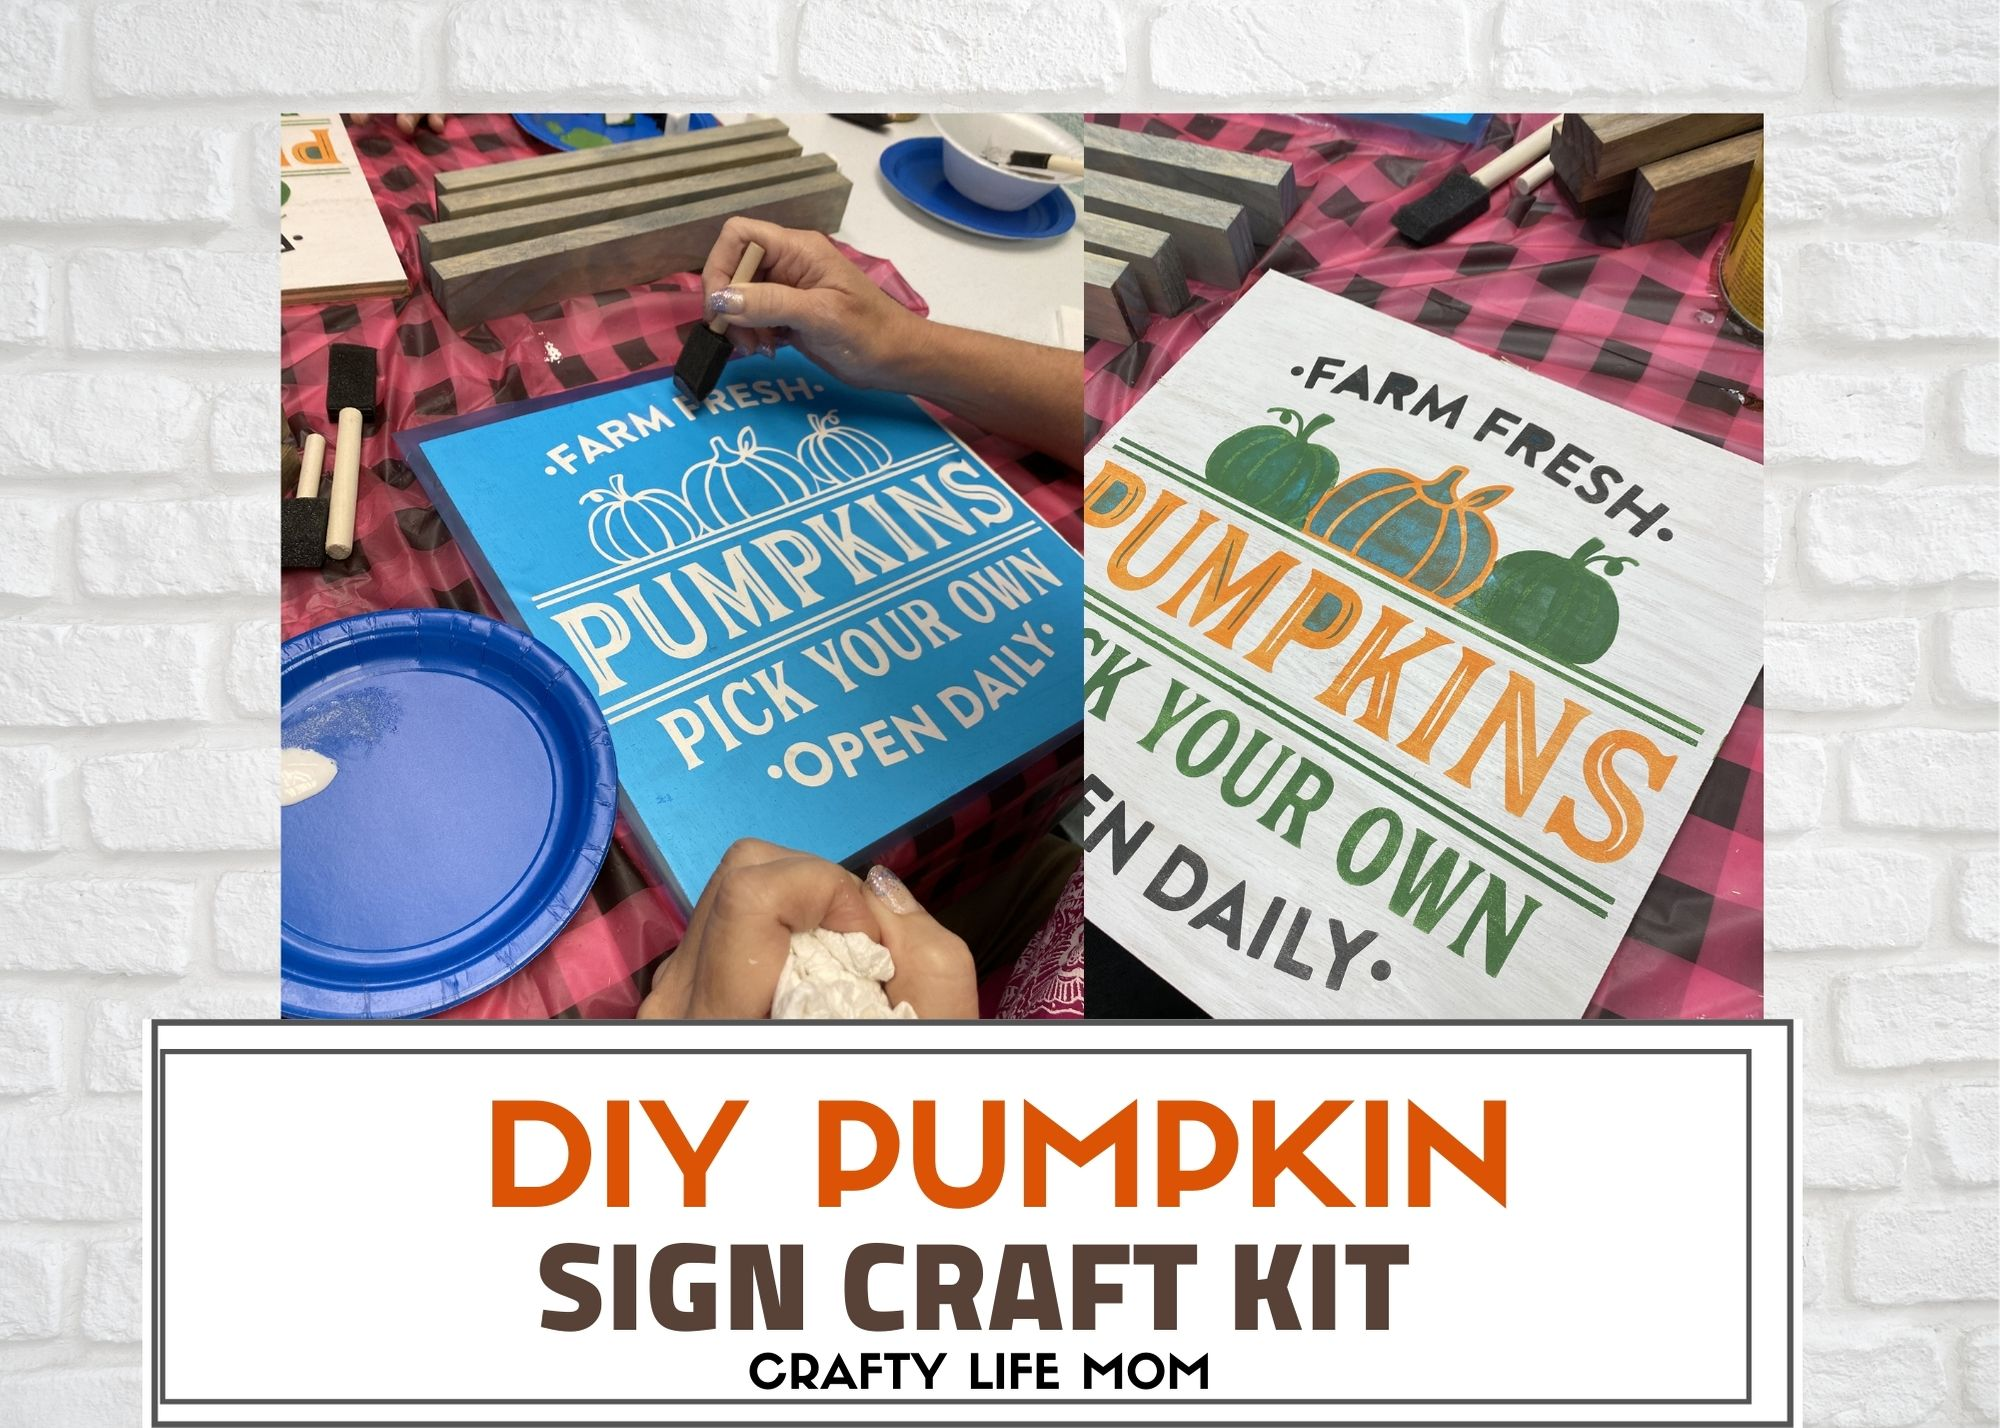 Create this Pick Your Pumpkin Patch Sign to complete your Fall home decor look with this simple DIY kit. This kit includes everything you need to make this Pumpkin Patch sign on your own.